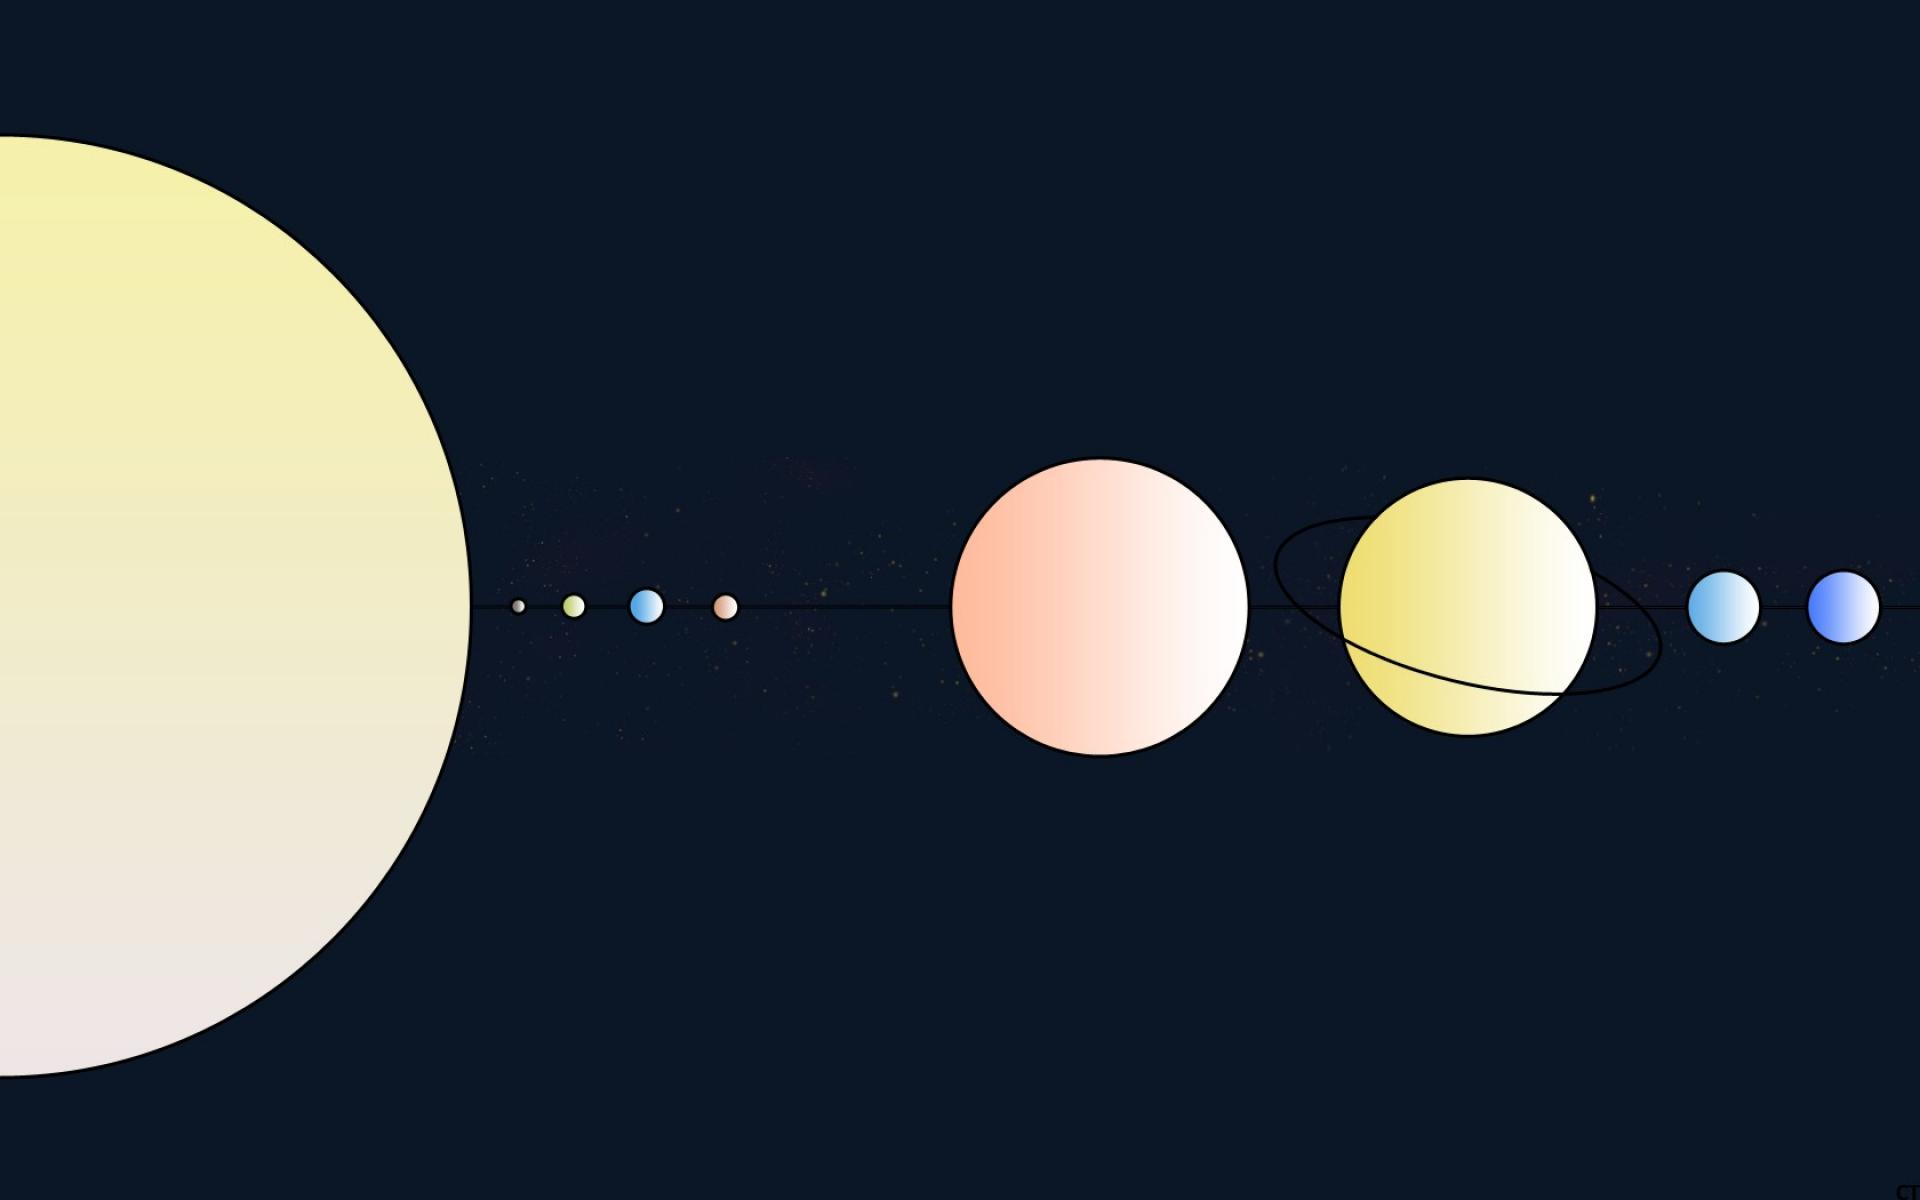 planets solar system wallpaper 1920x1200 - photo #10